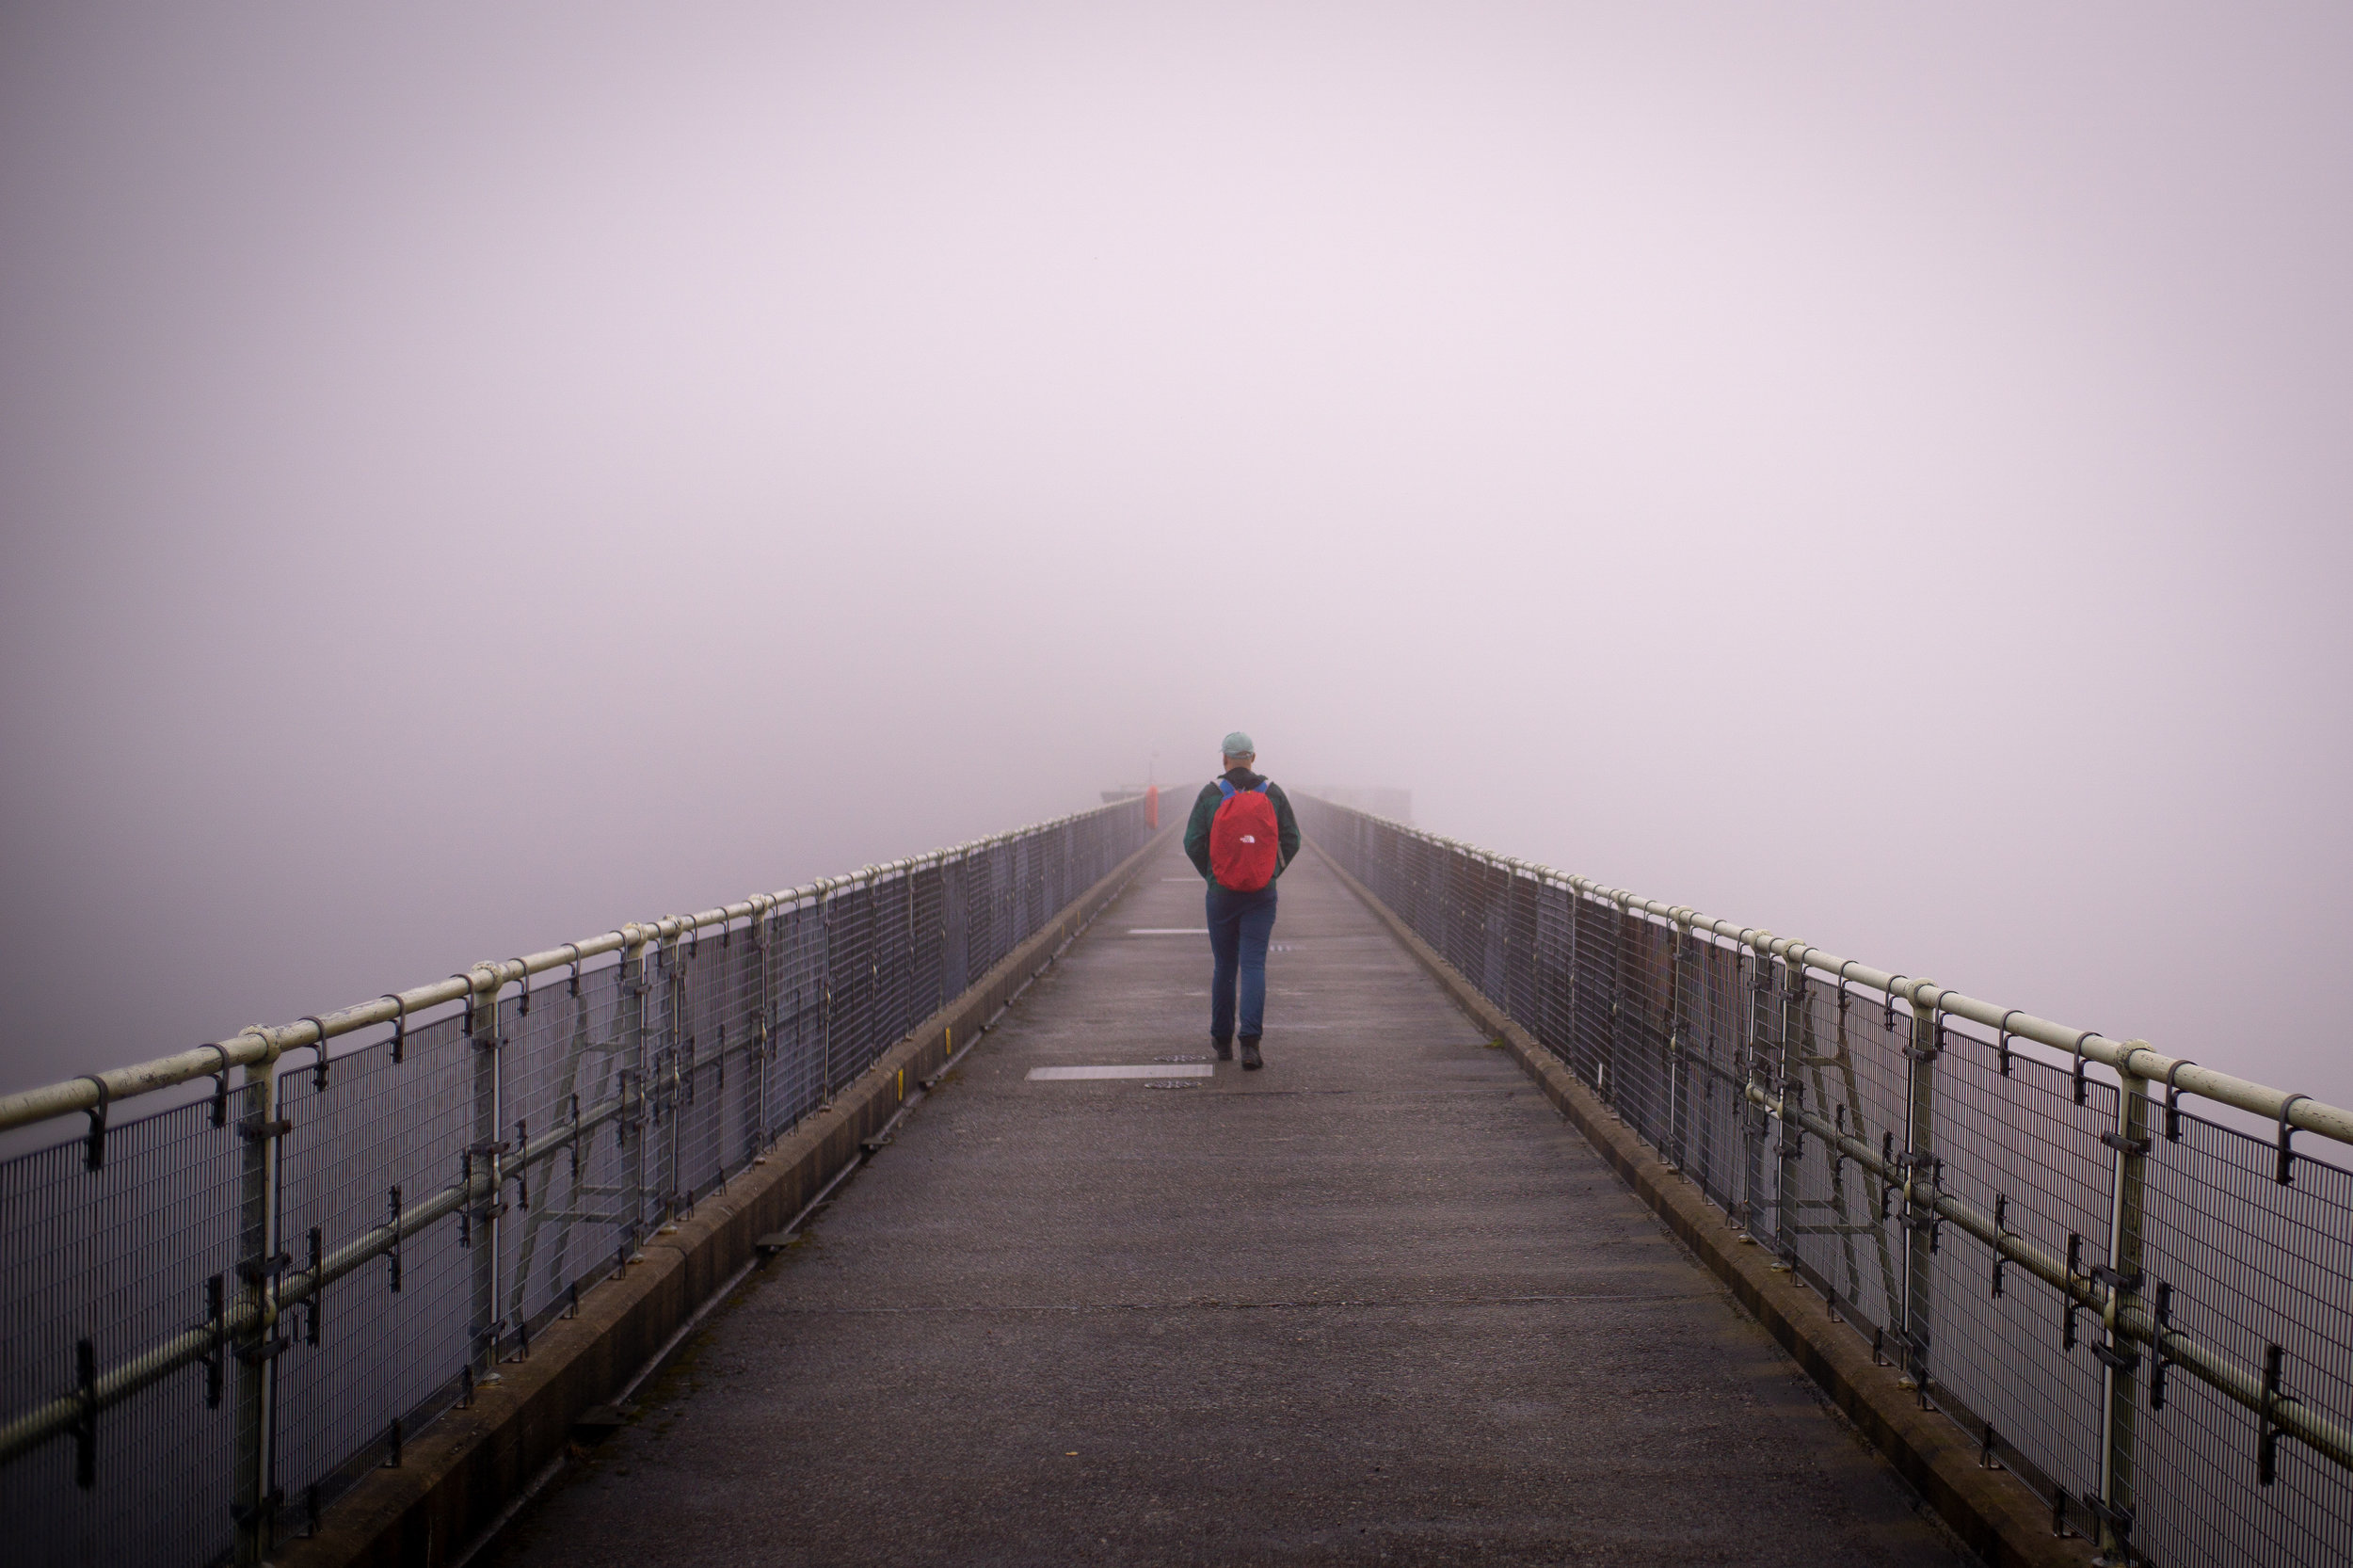 Dom in the mist